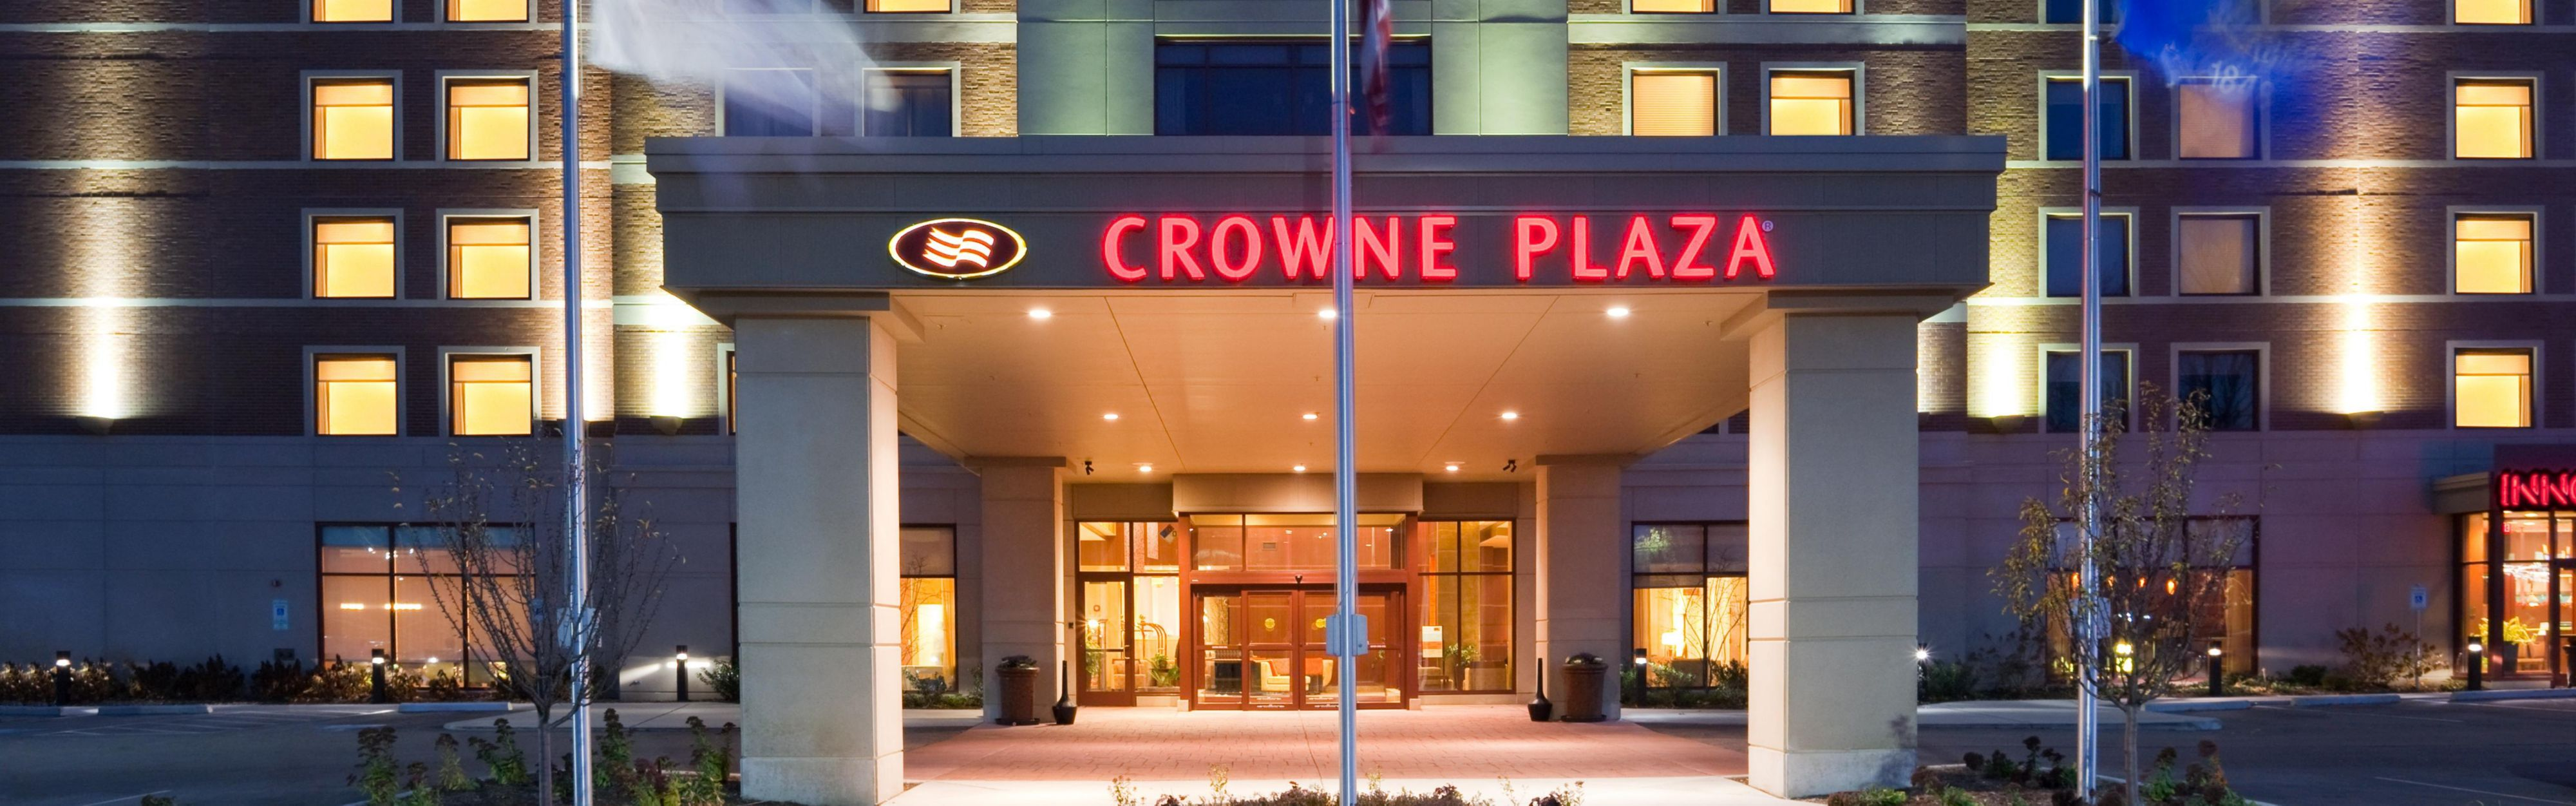 Crowne plaza coupons